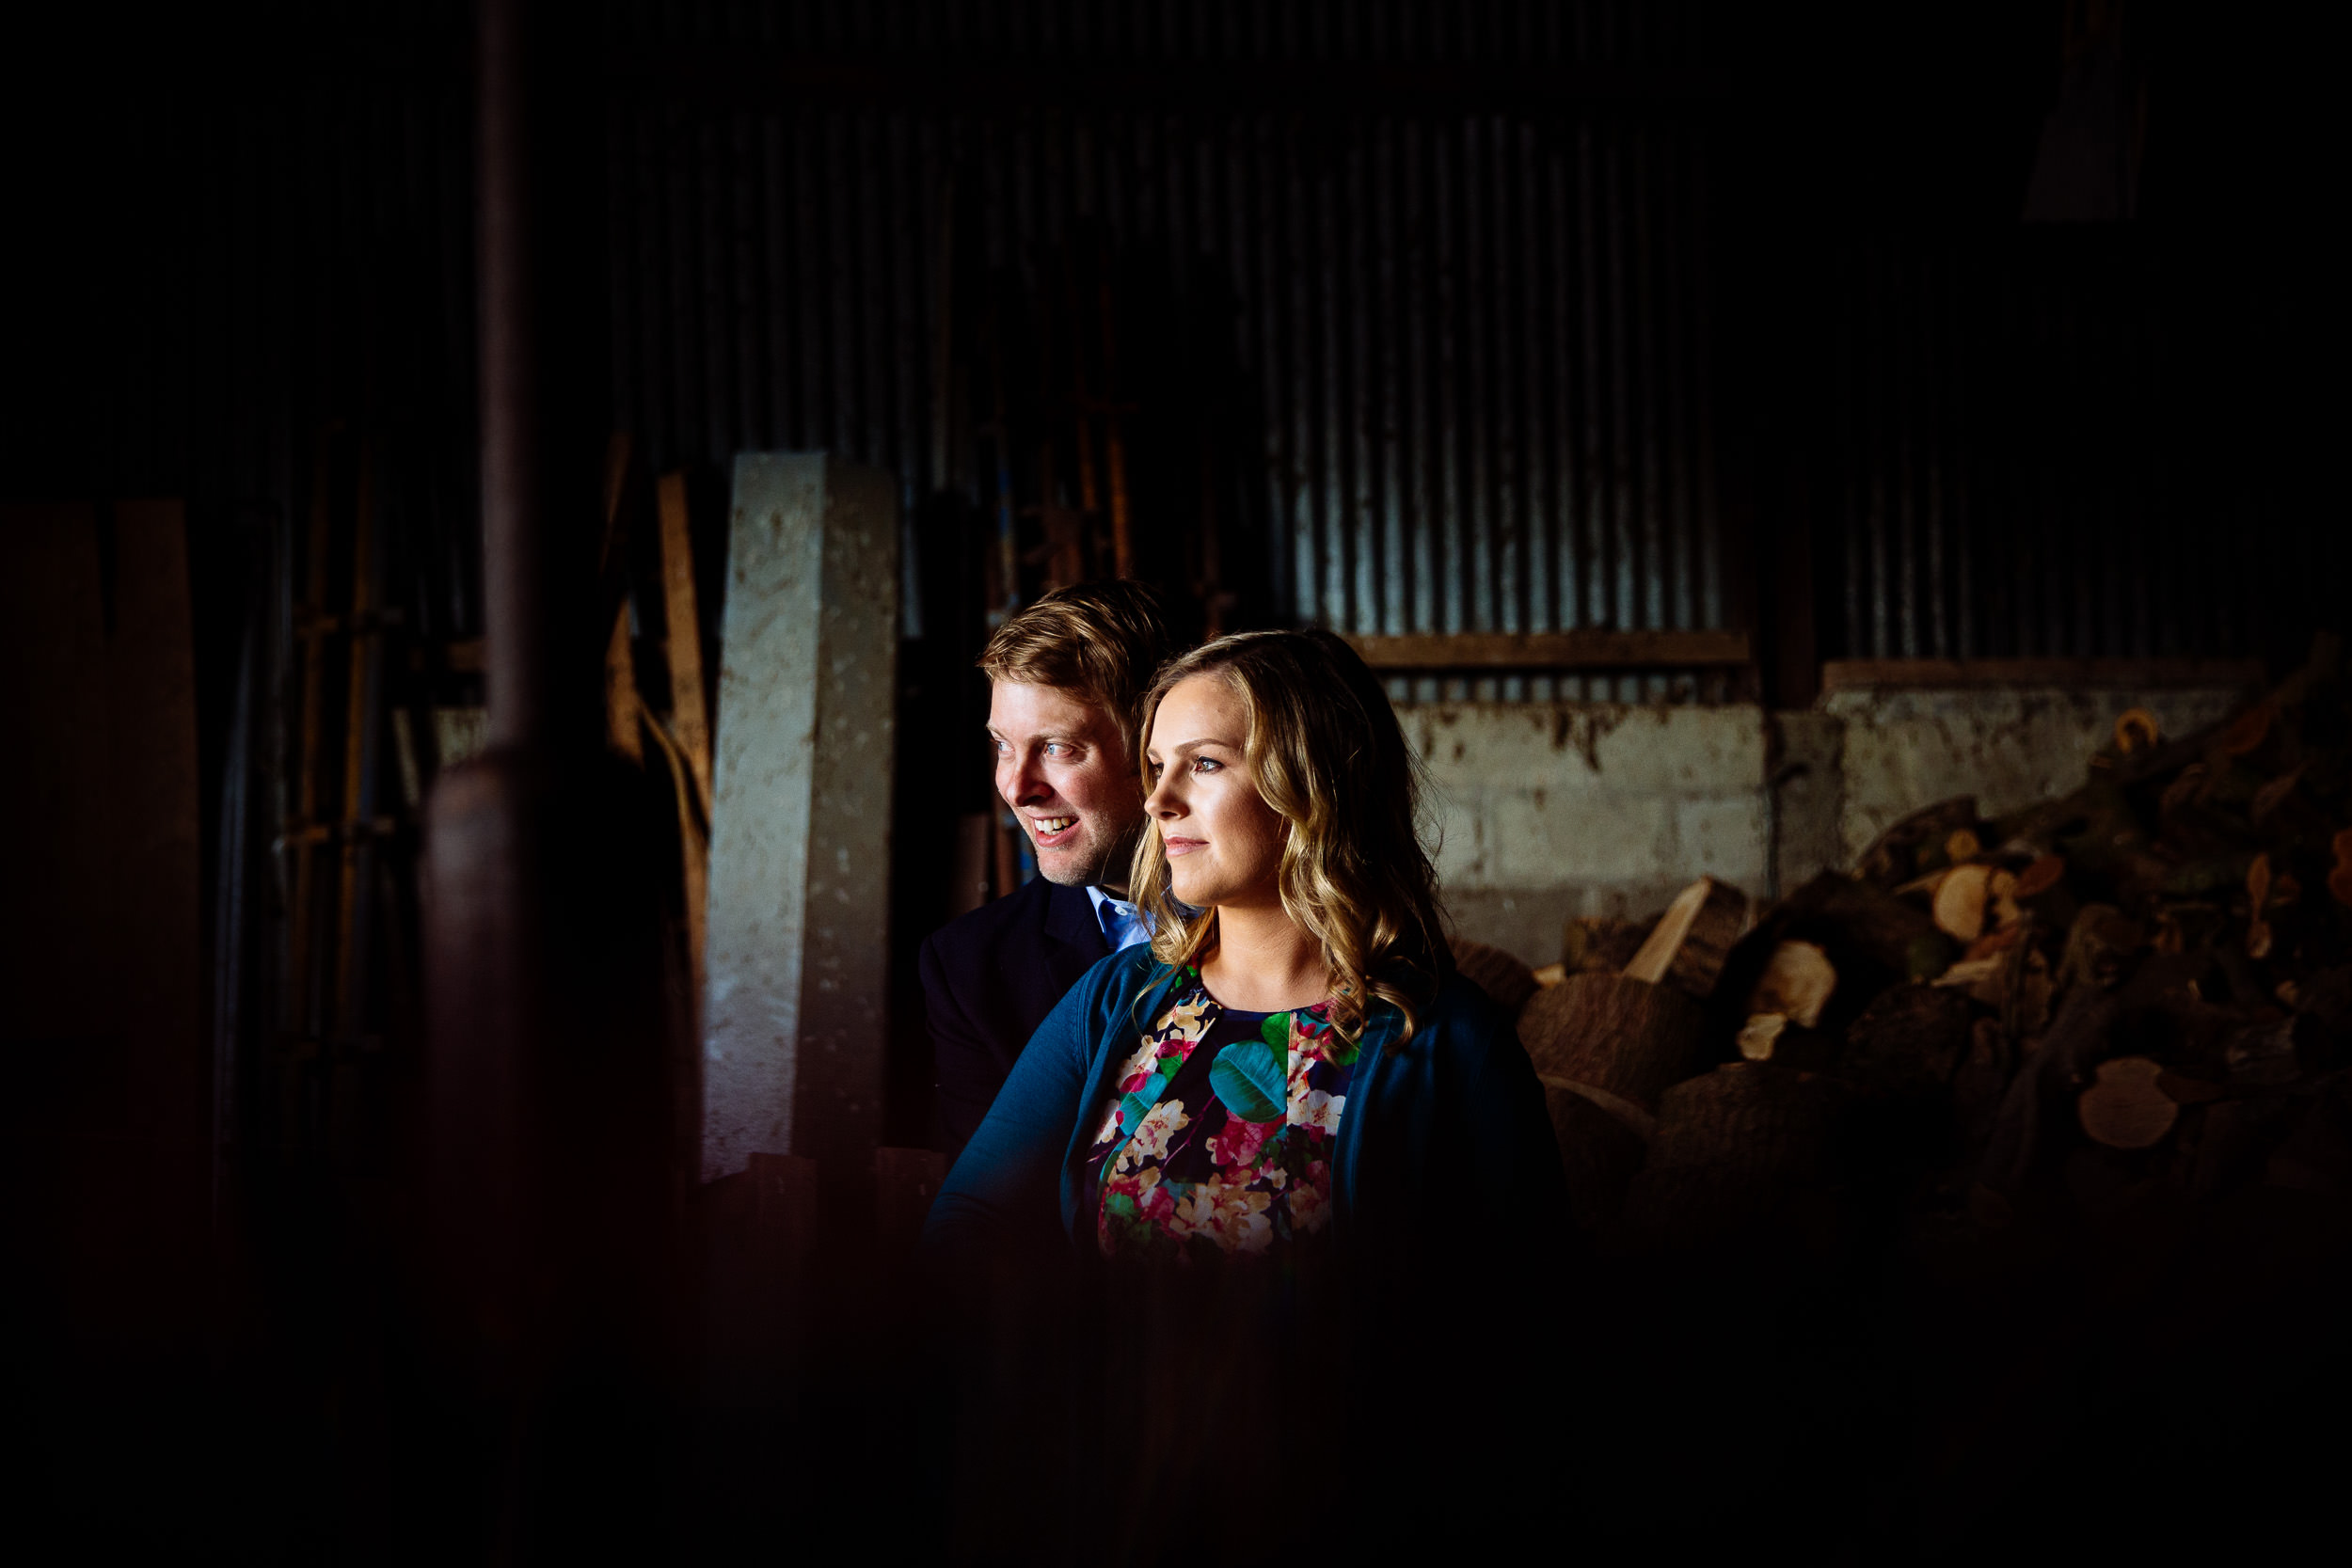 clairebyrnephotography-fun-wedding-photographer-ireland-creative-103.jpg